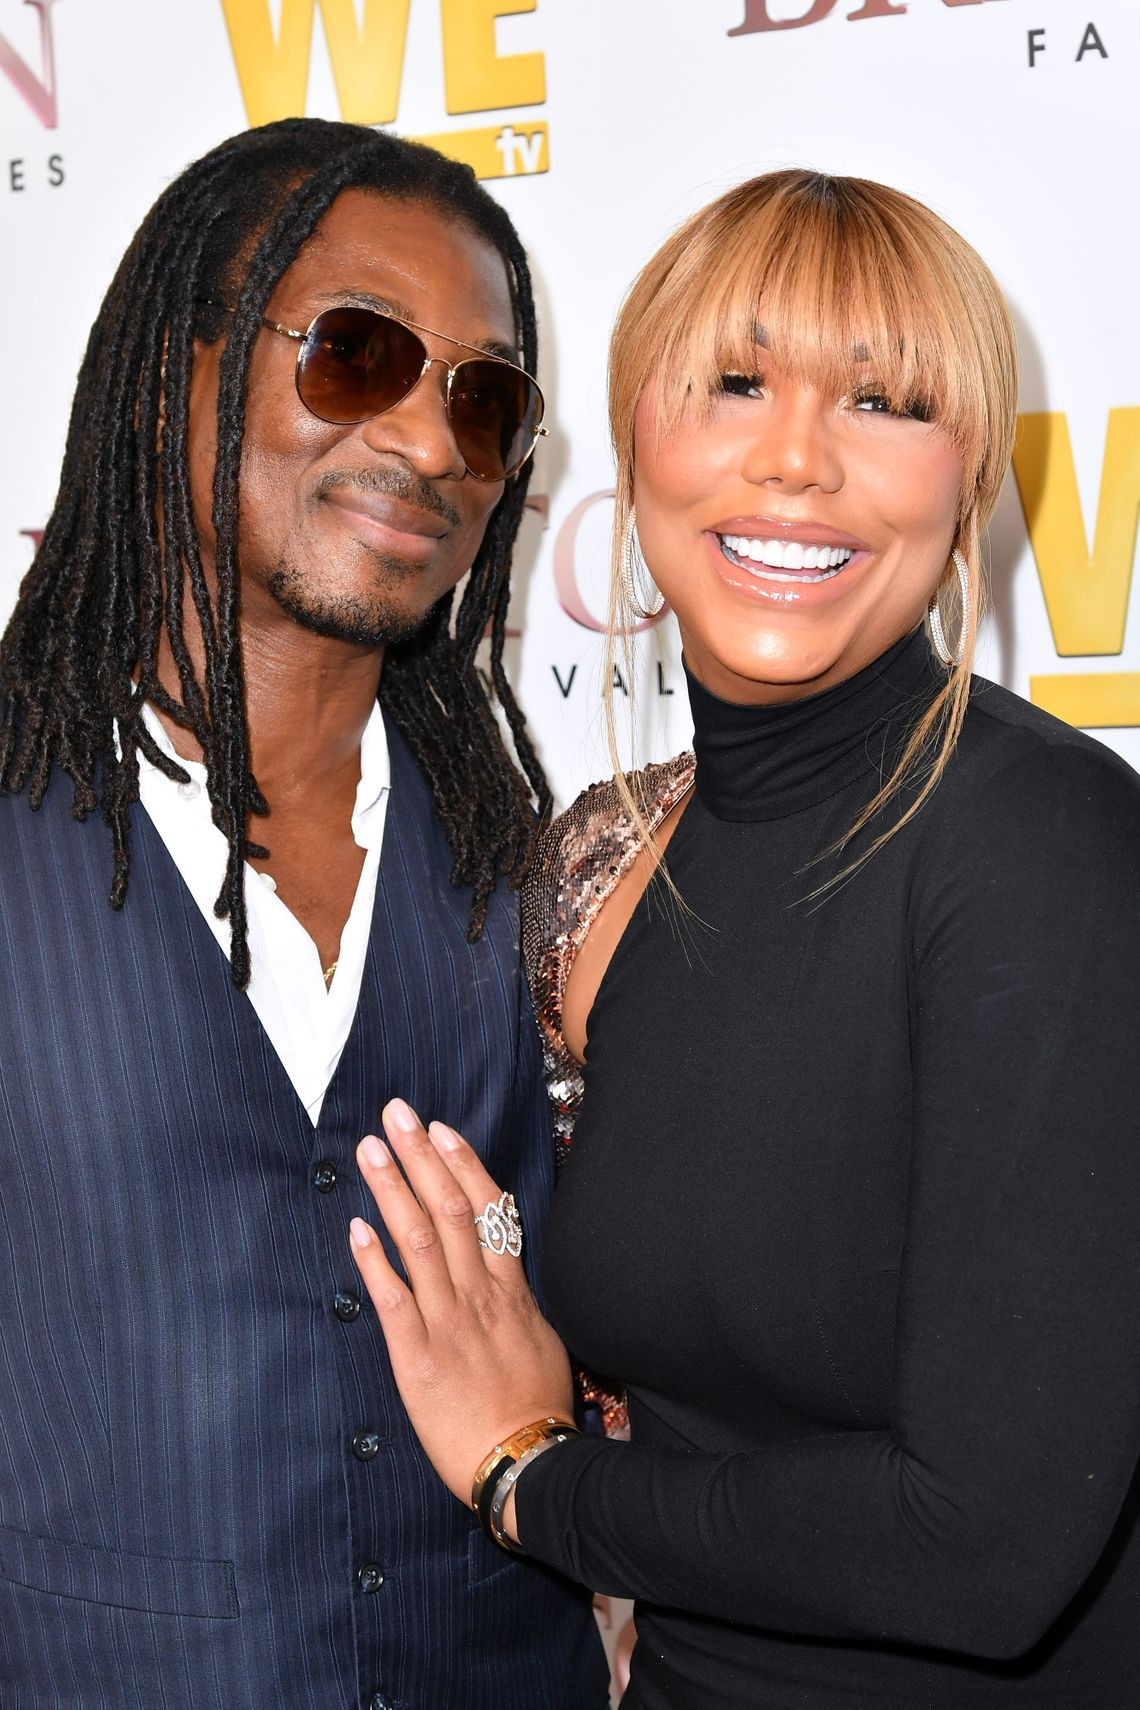 tamar-braxton-suicide-attempt-update-condition-hospitalized-boyfriend